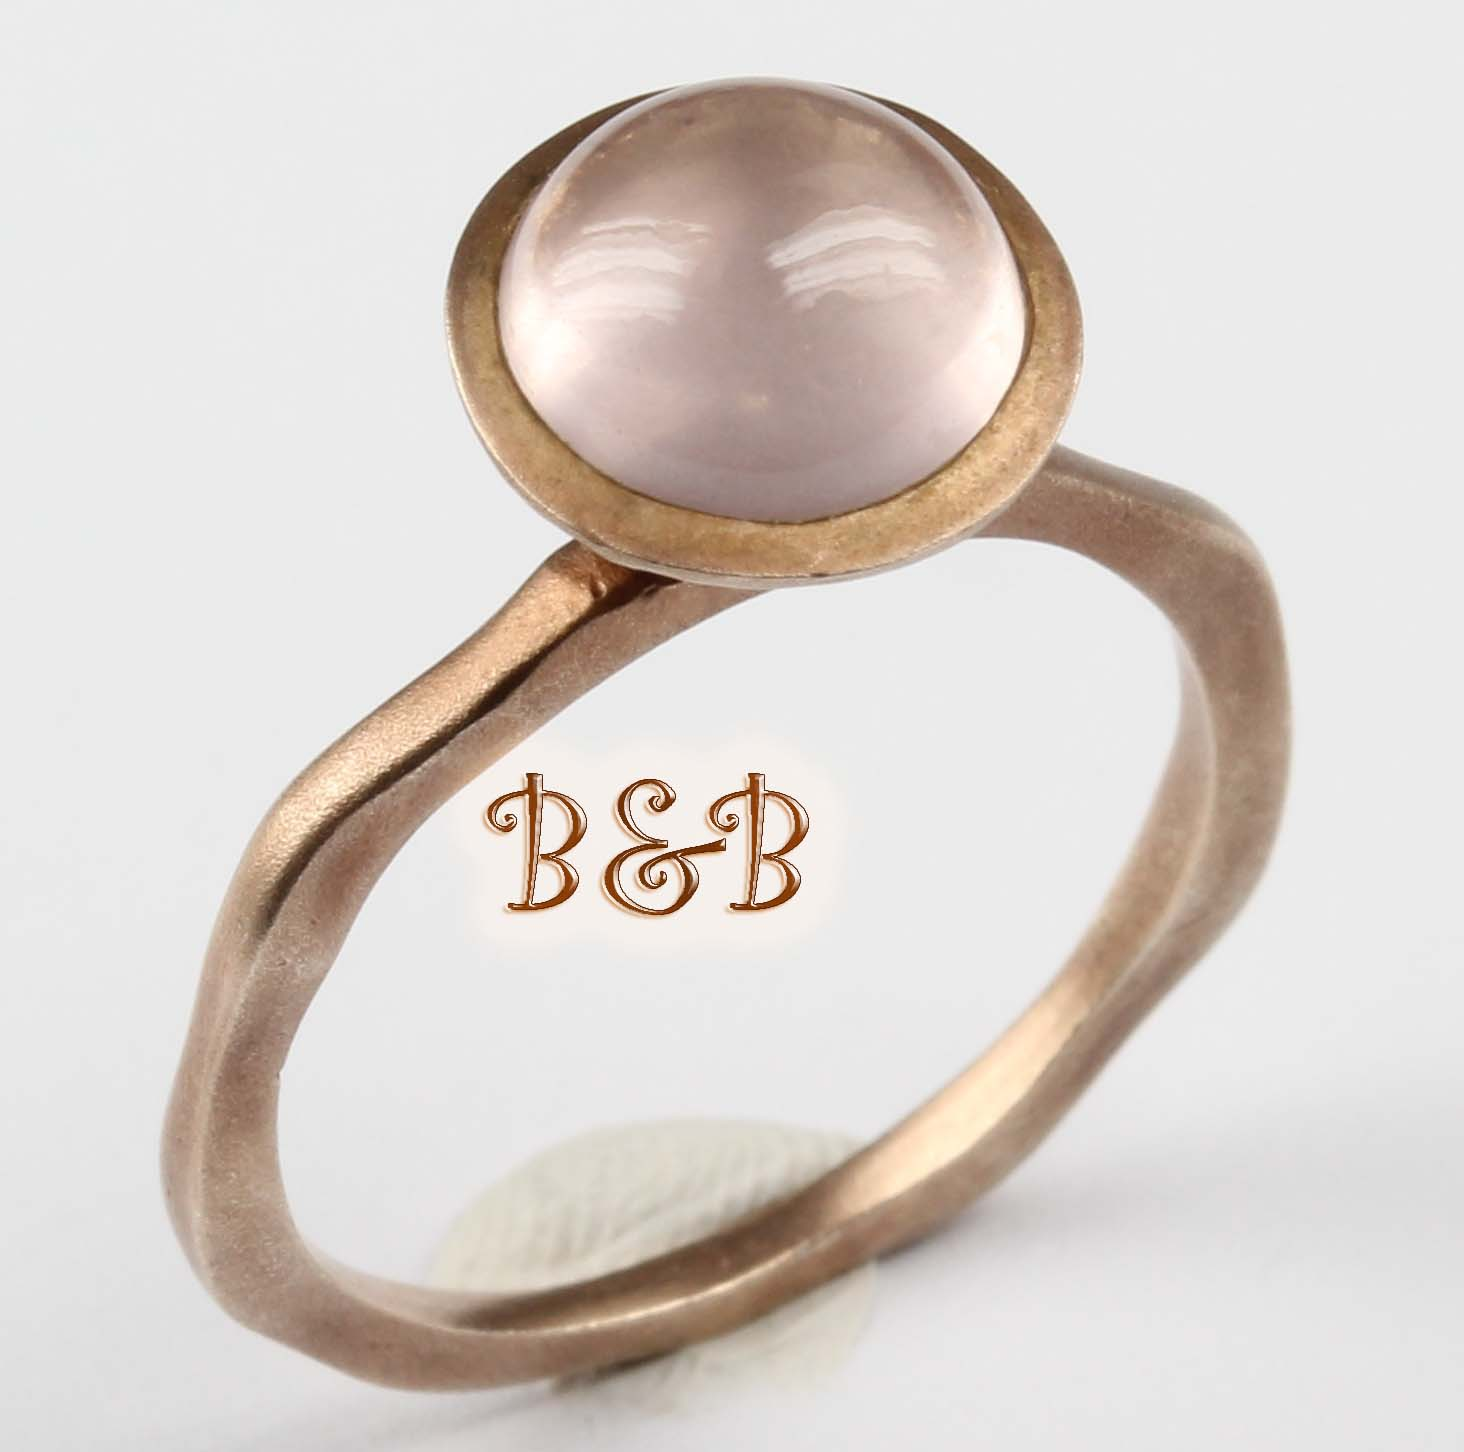 Silver ring_bb1.1